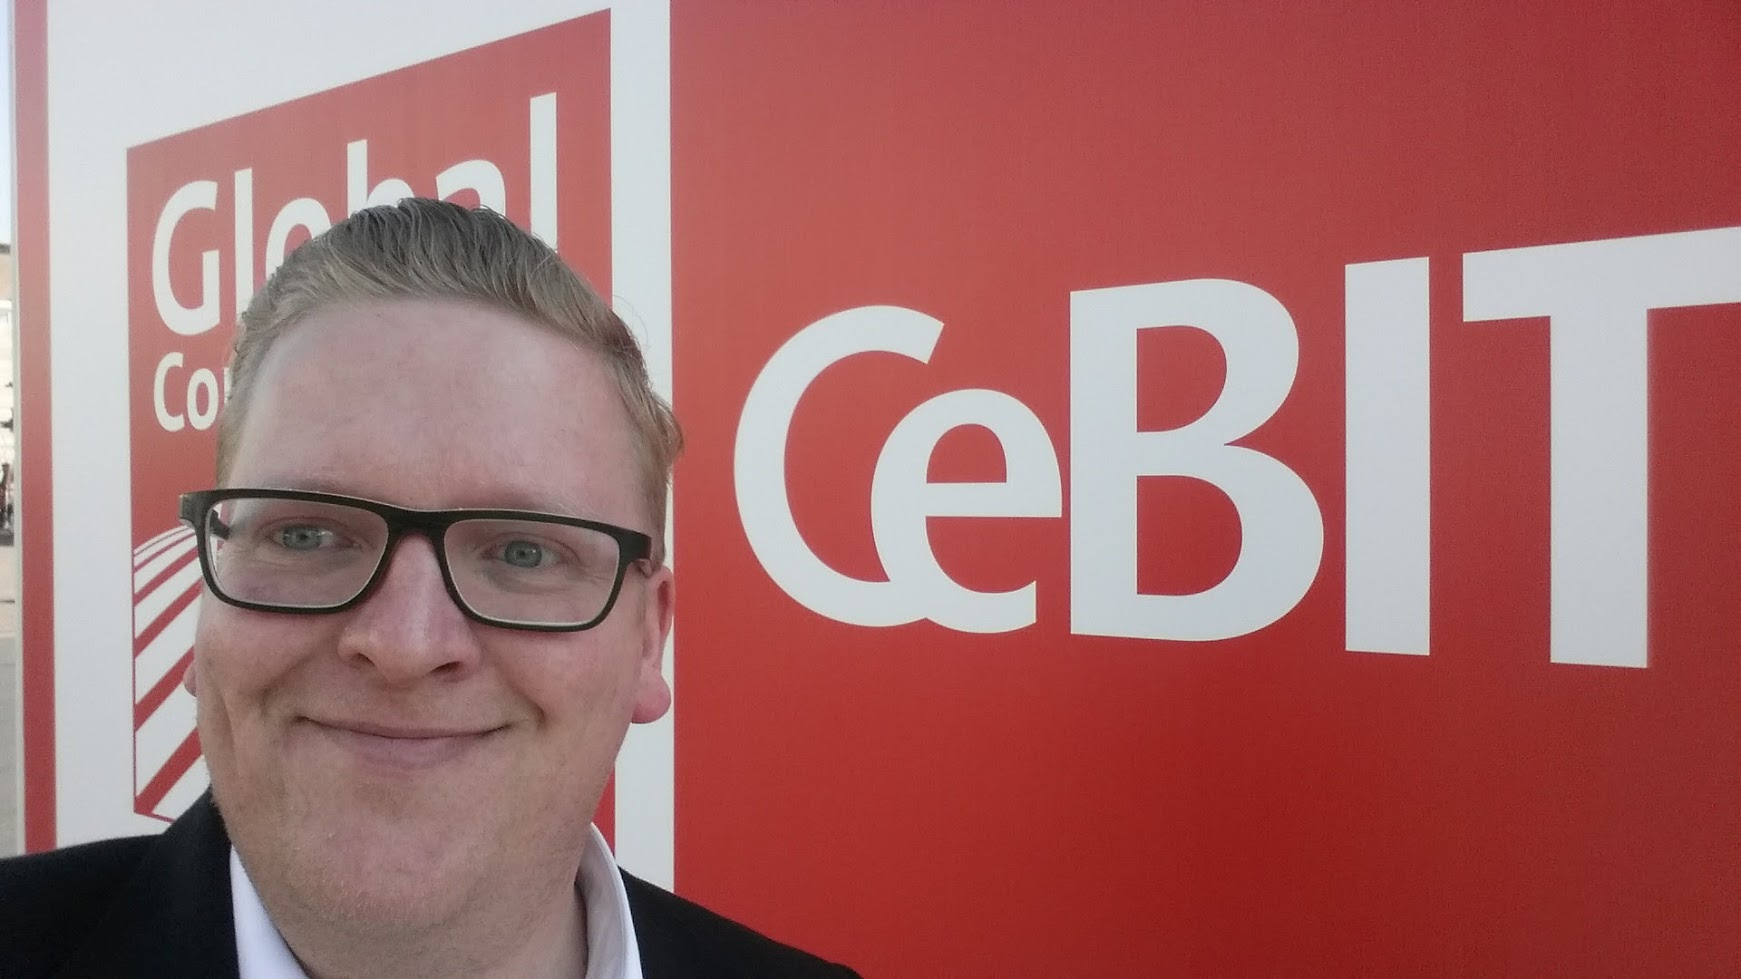 Holger Esseling, CeBIT 2016,